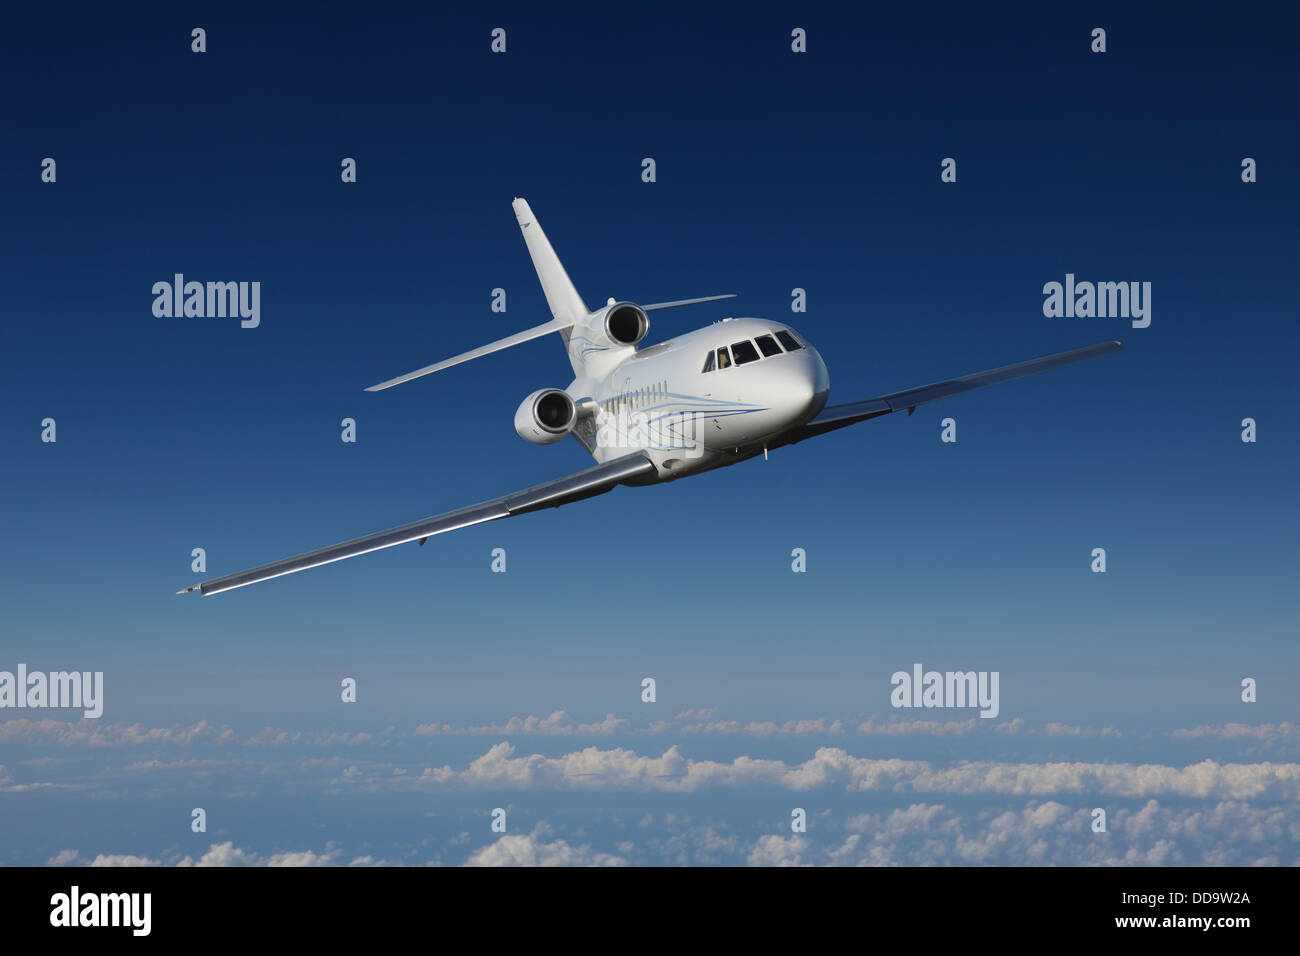 Falcon 900 Stock Photos & Falcon 900 Stock Images - Alamy